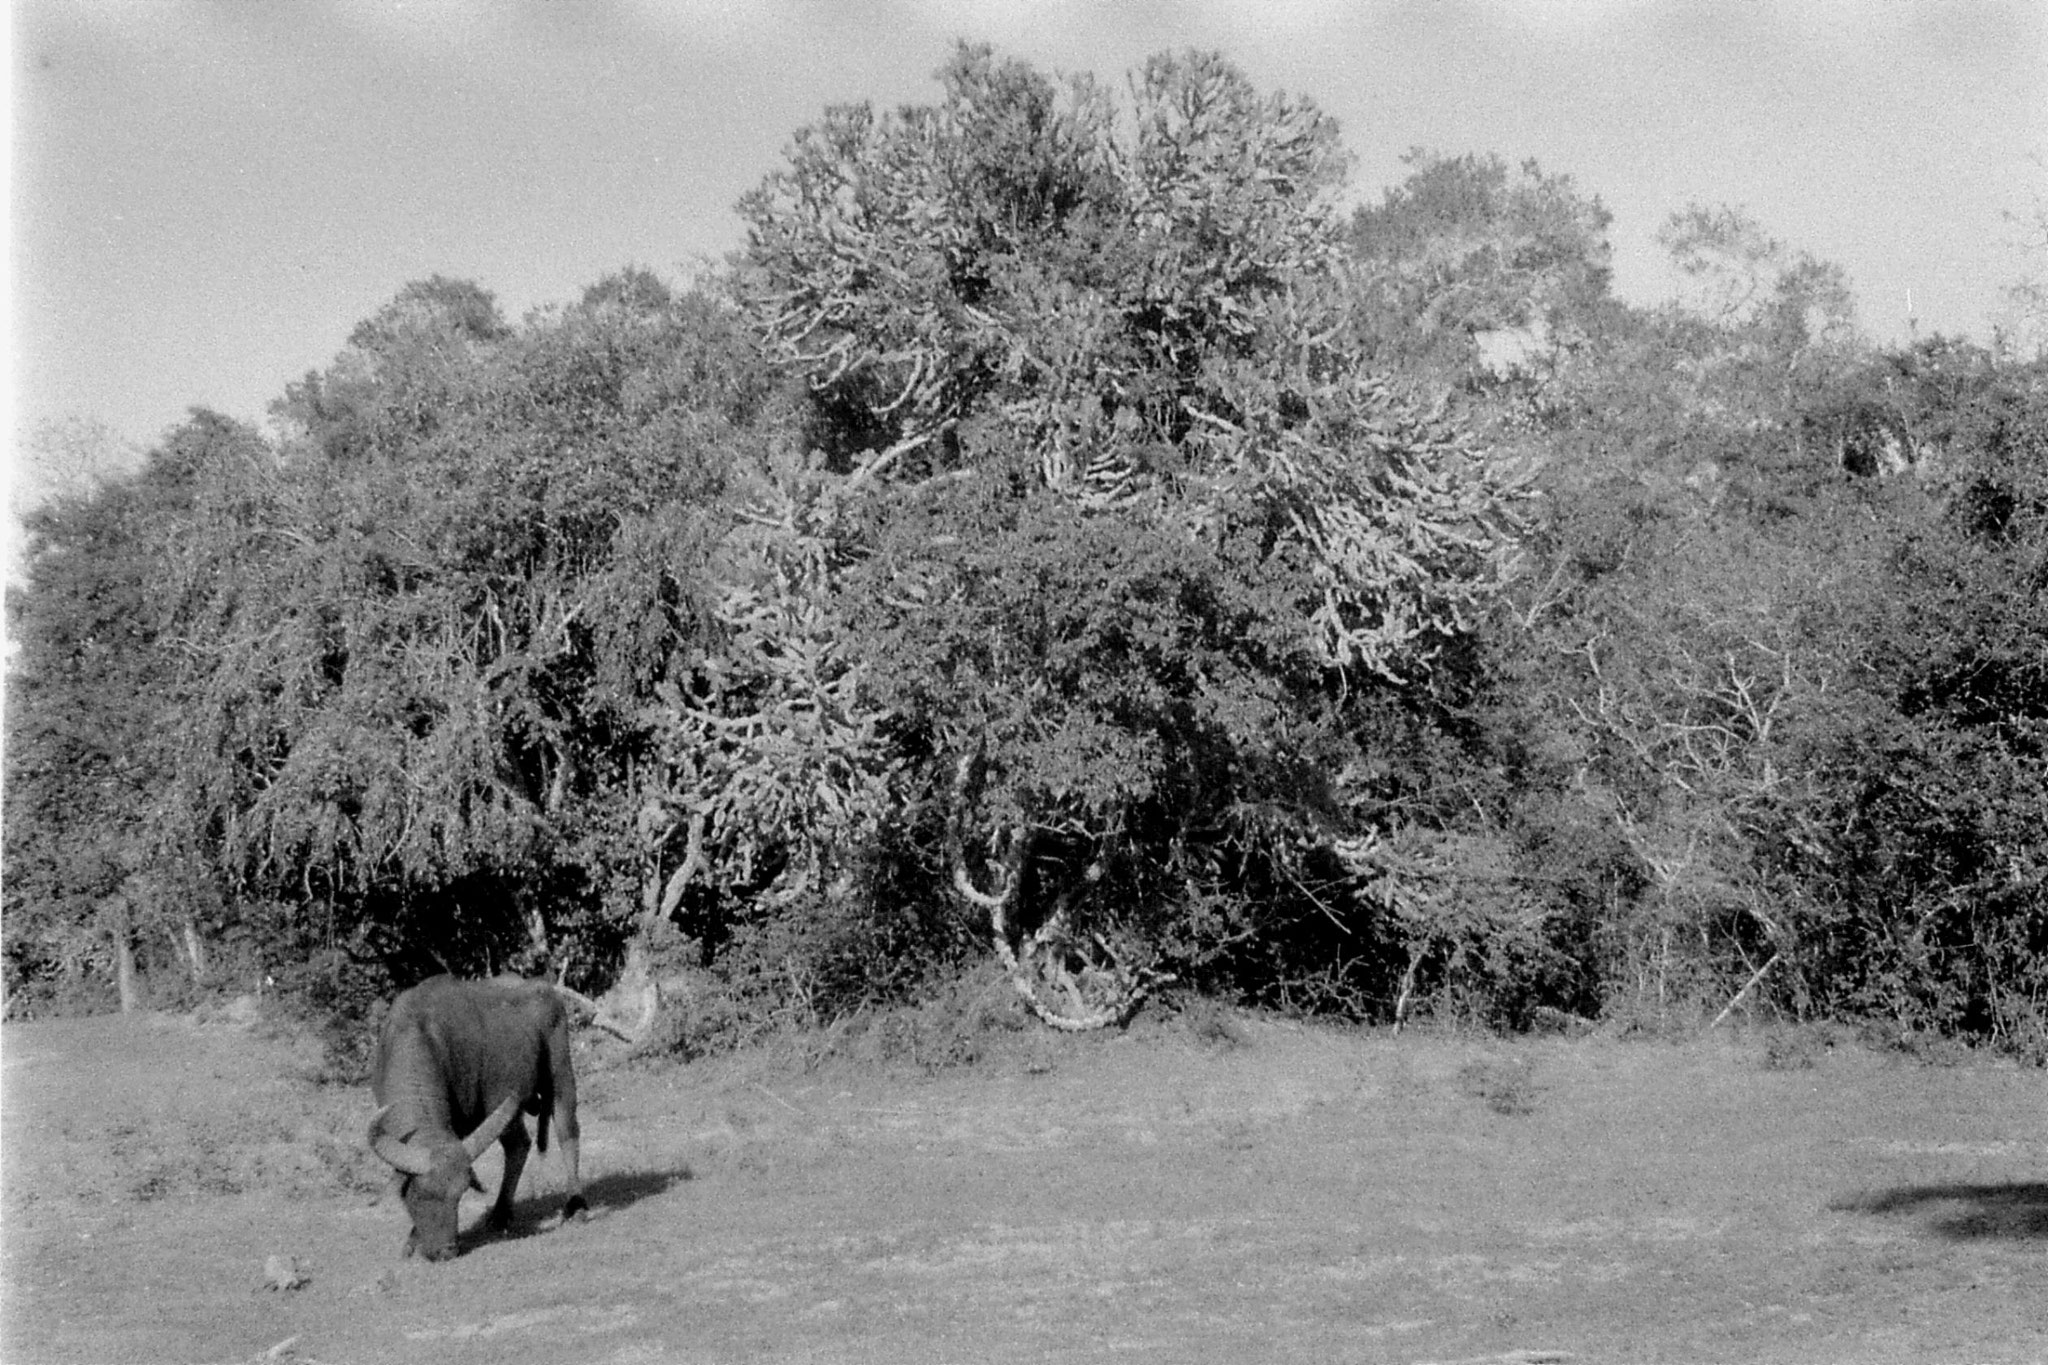 21/1/90: 31: Yala National Park